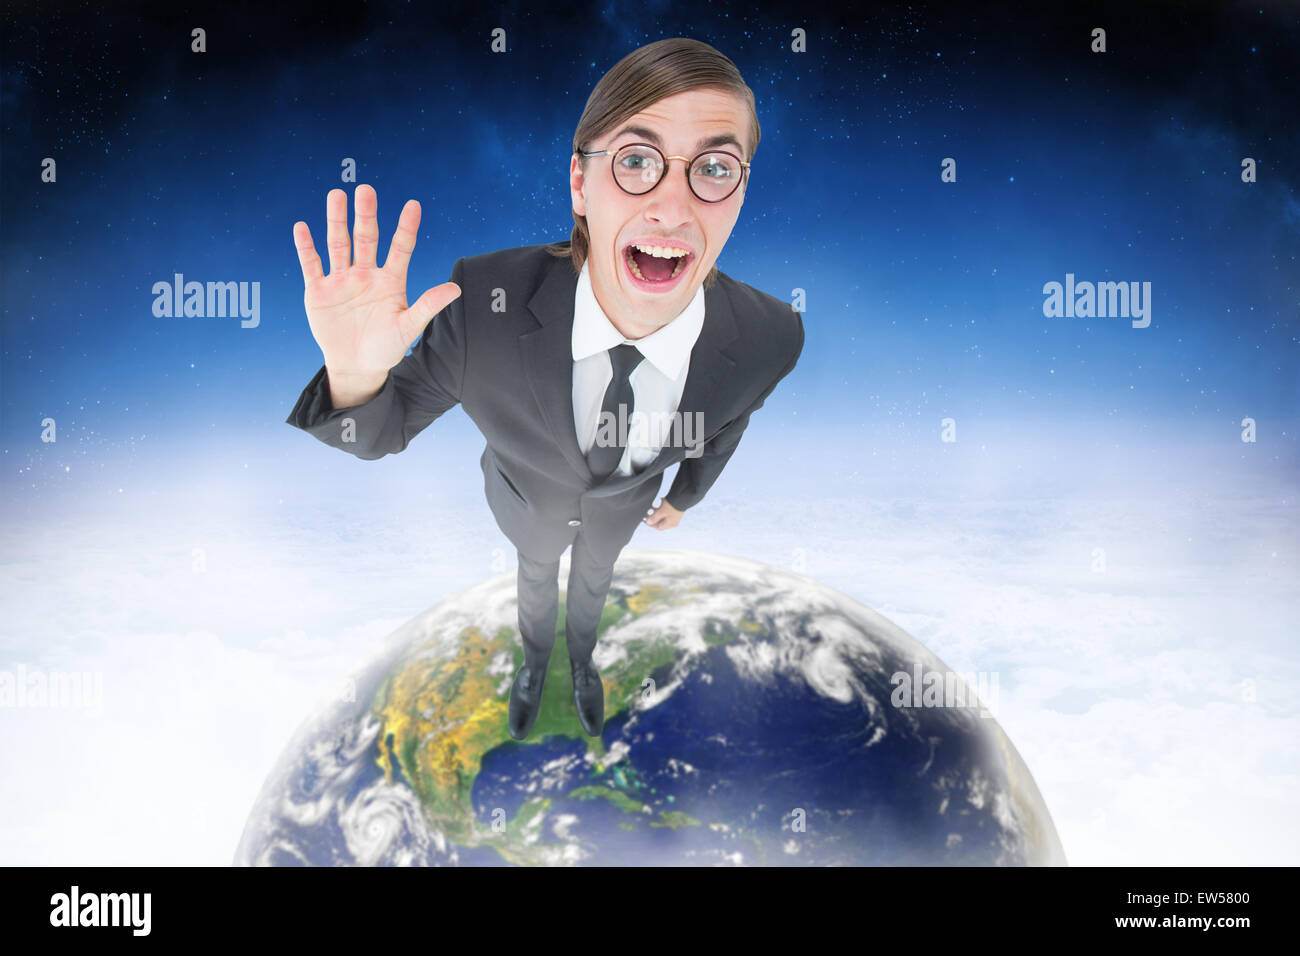 Composite image of geeky businessman waving at camera - Stock Image